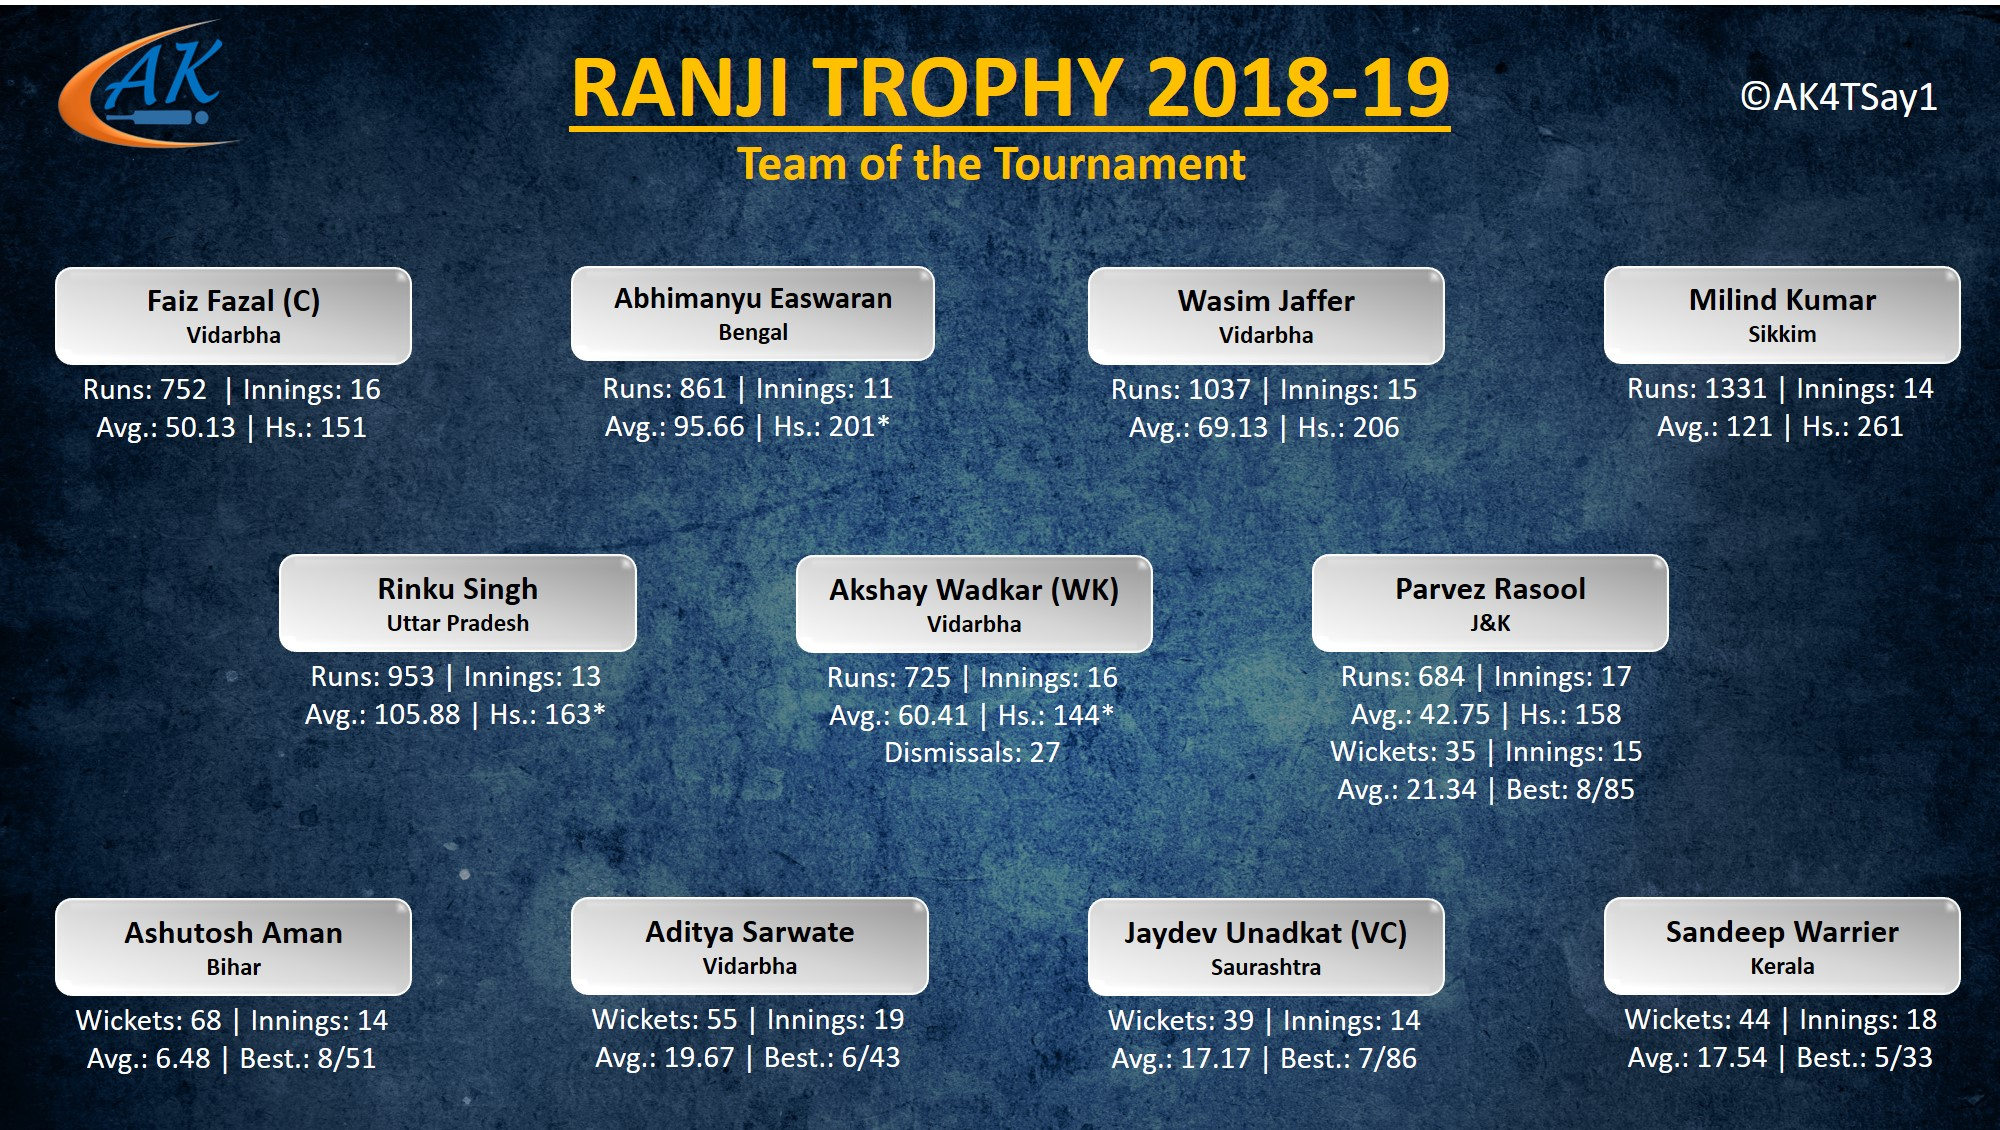 Team of the Tournament for Ranji Trophy 2018-19